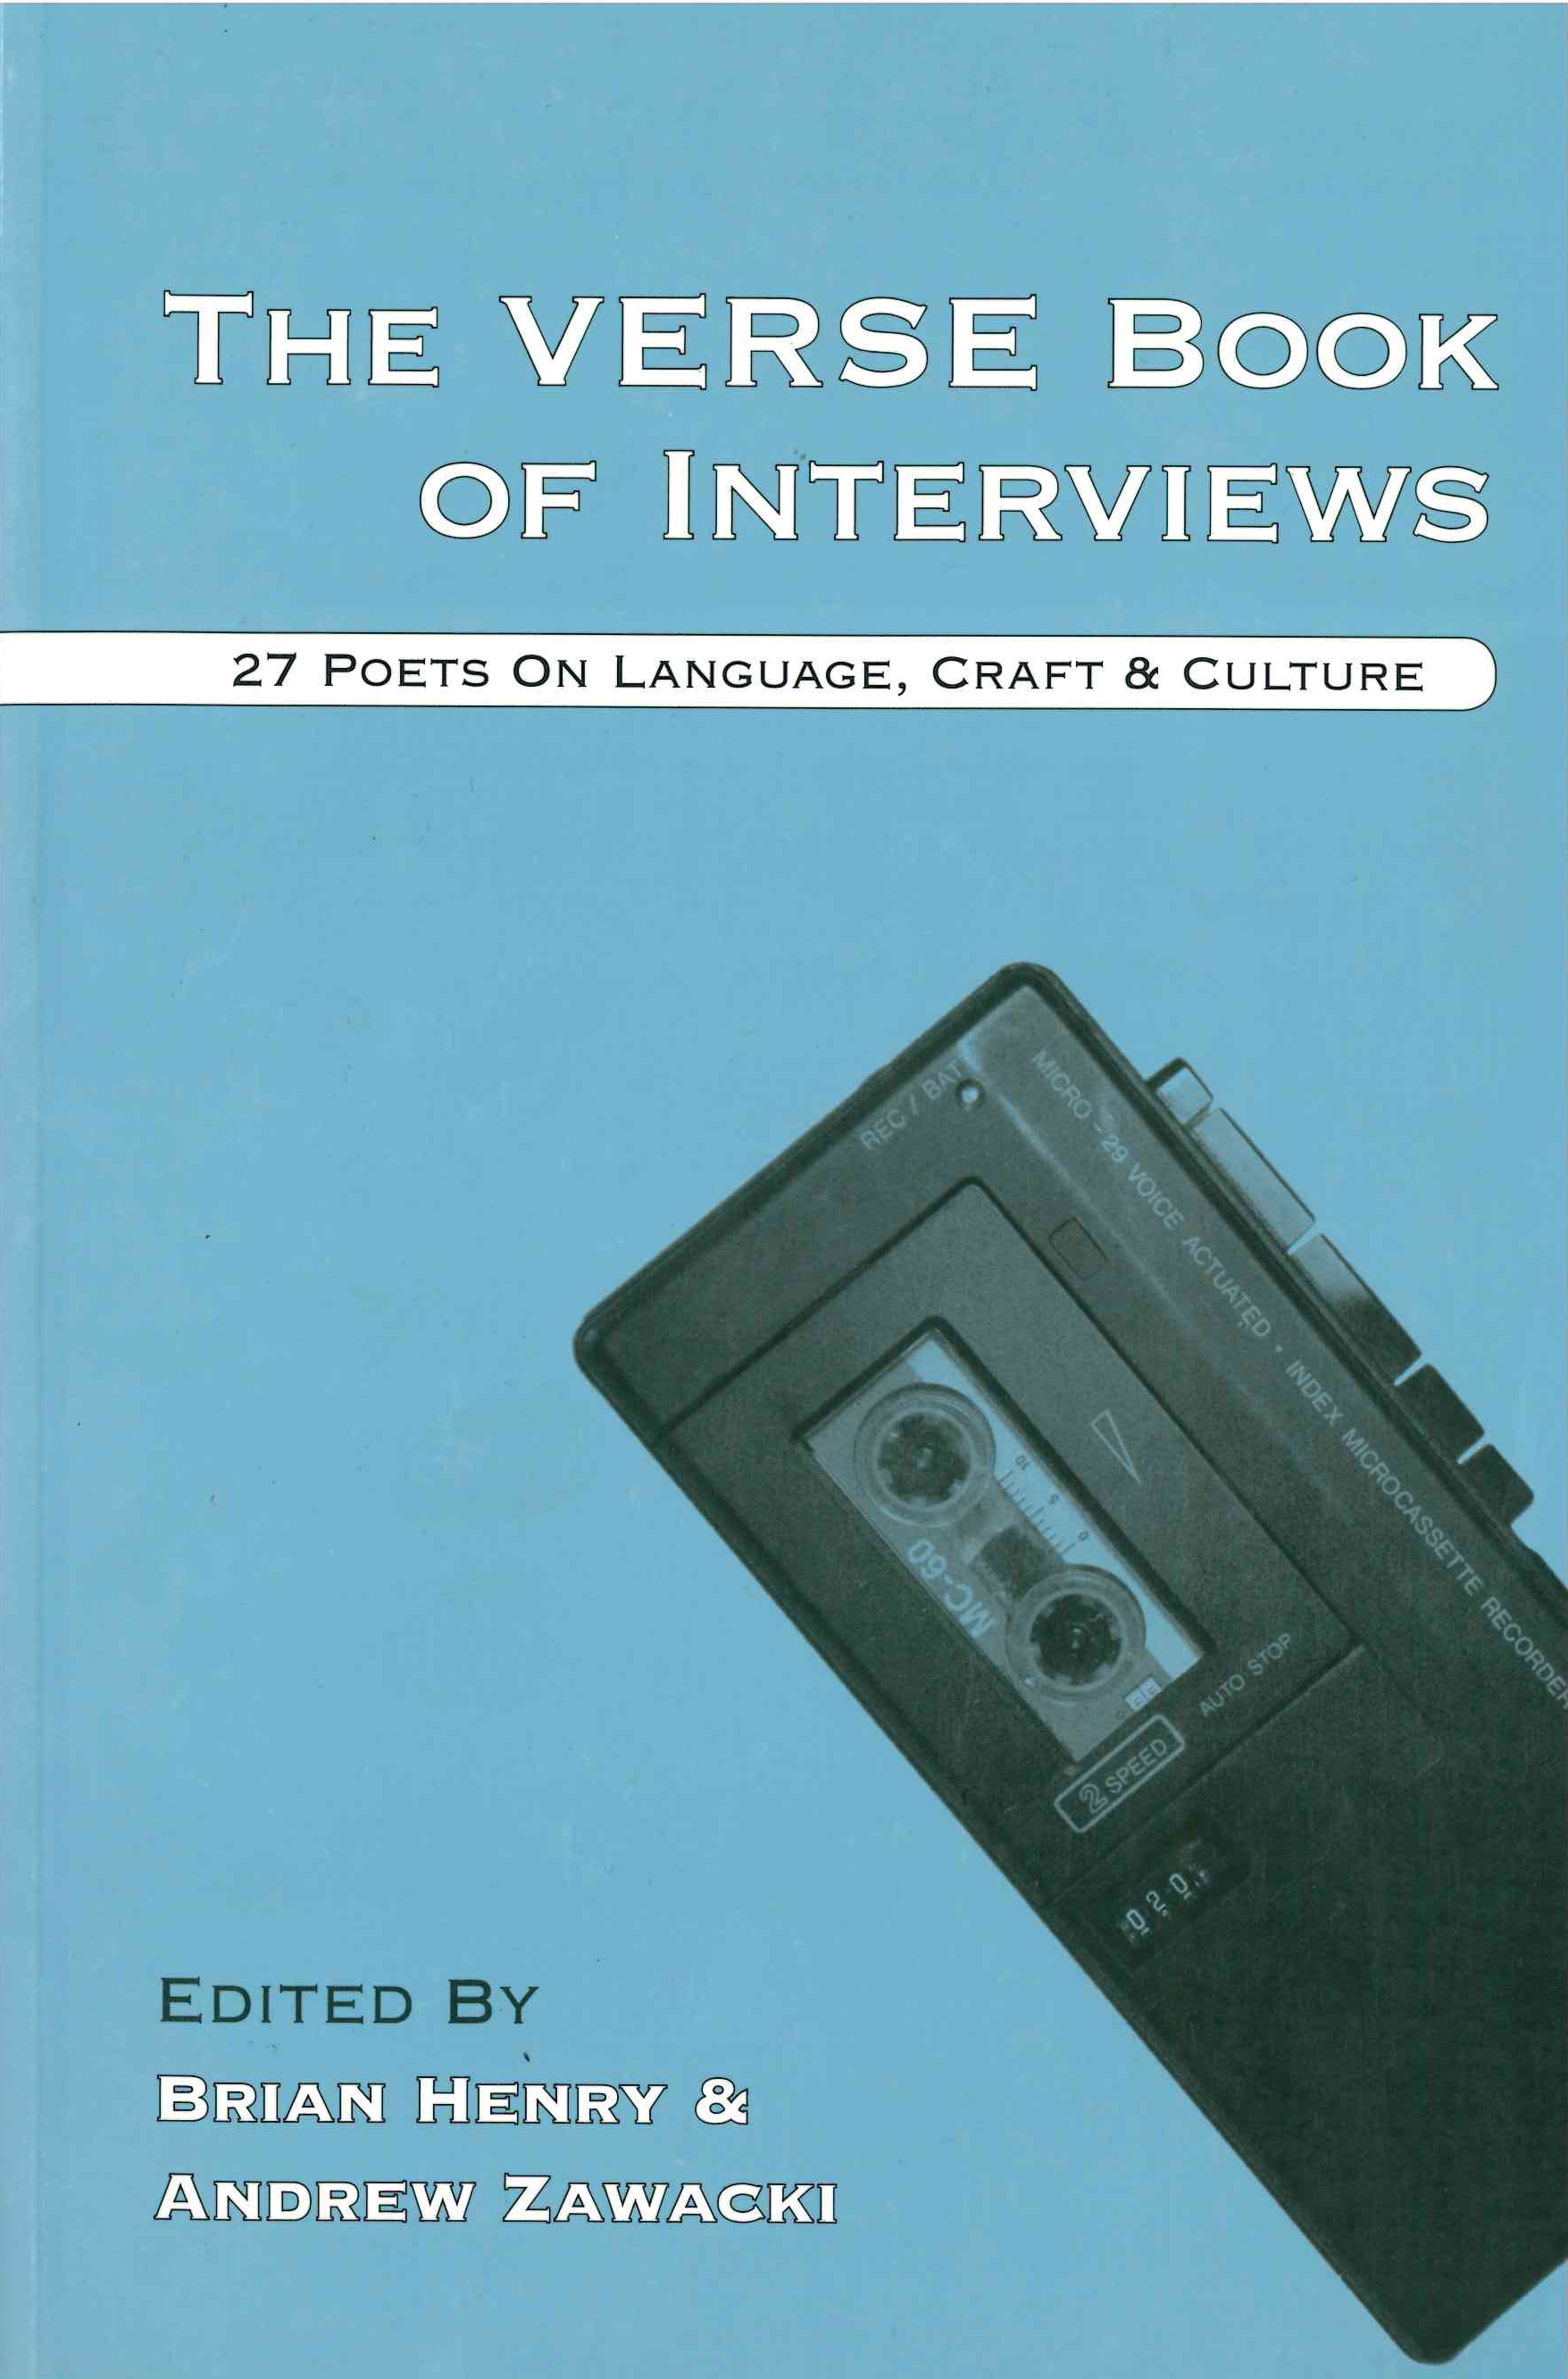 THE VERSE BOOK OF INTERVIEWS: 27 POETS ON LANGUAGE, CRAFT AND CULTURE